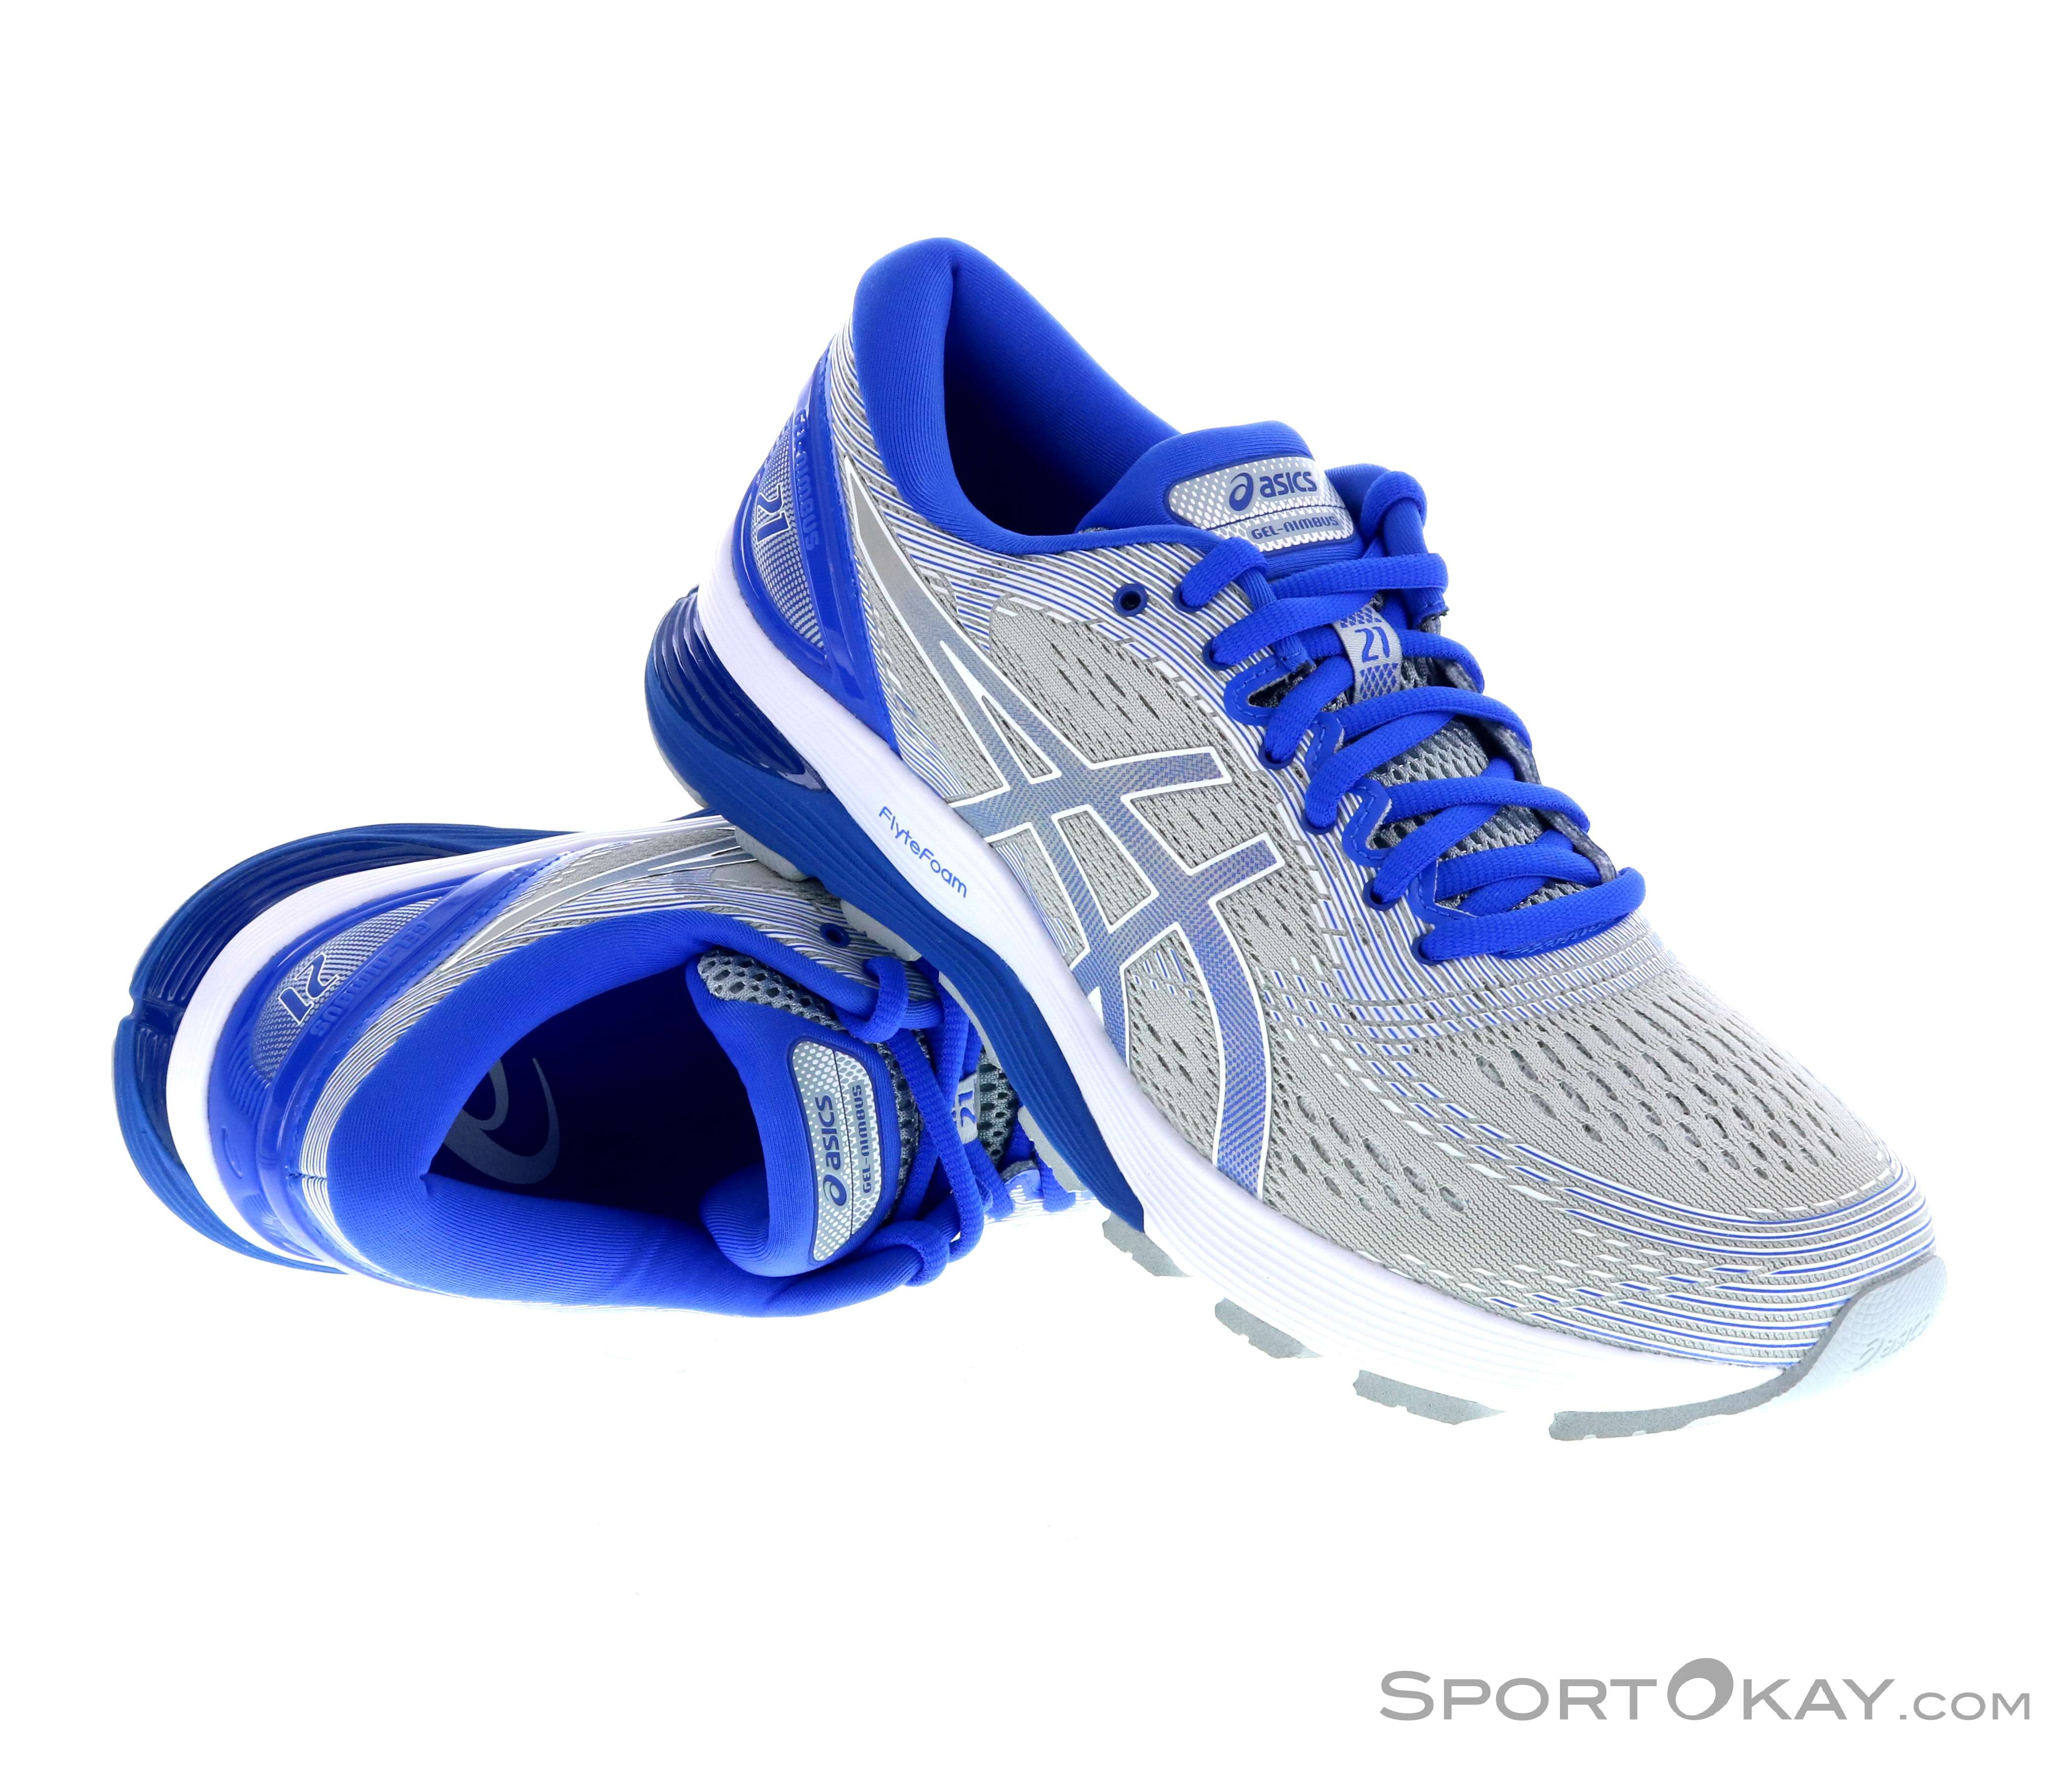 the best attitude b1685 9a564 Asics Nimbus 21 Lite Show Womens Running Shoes , Asics, Gray, , Female,